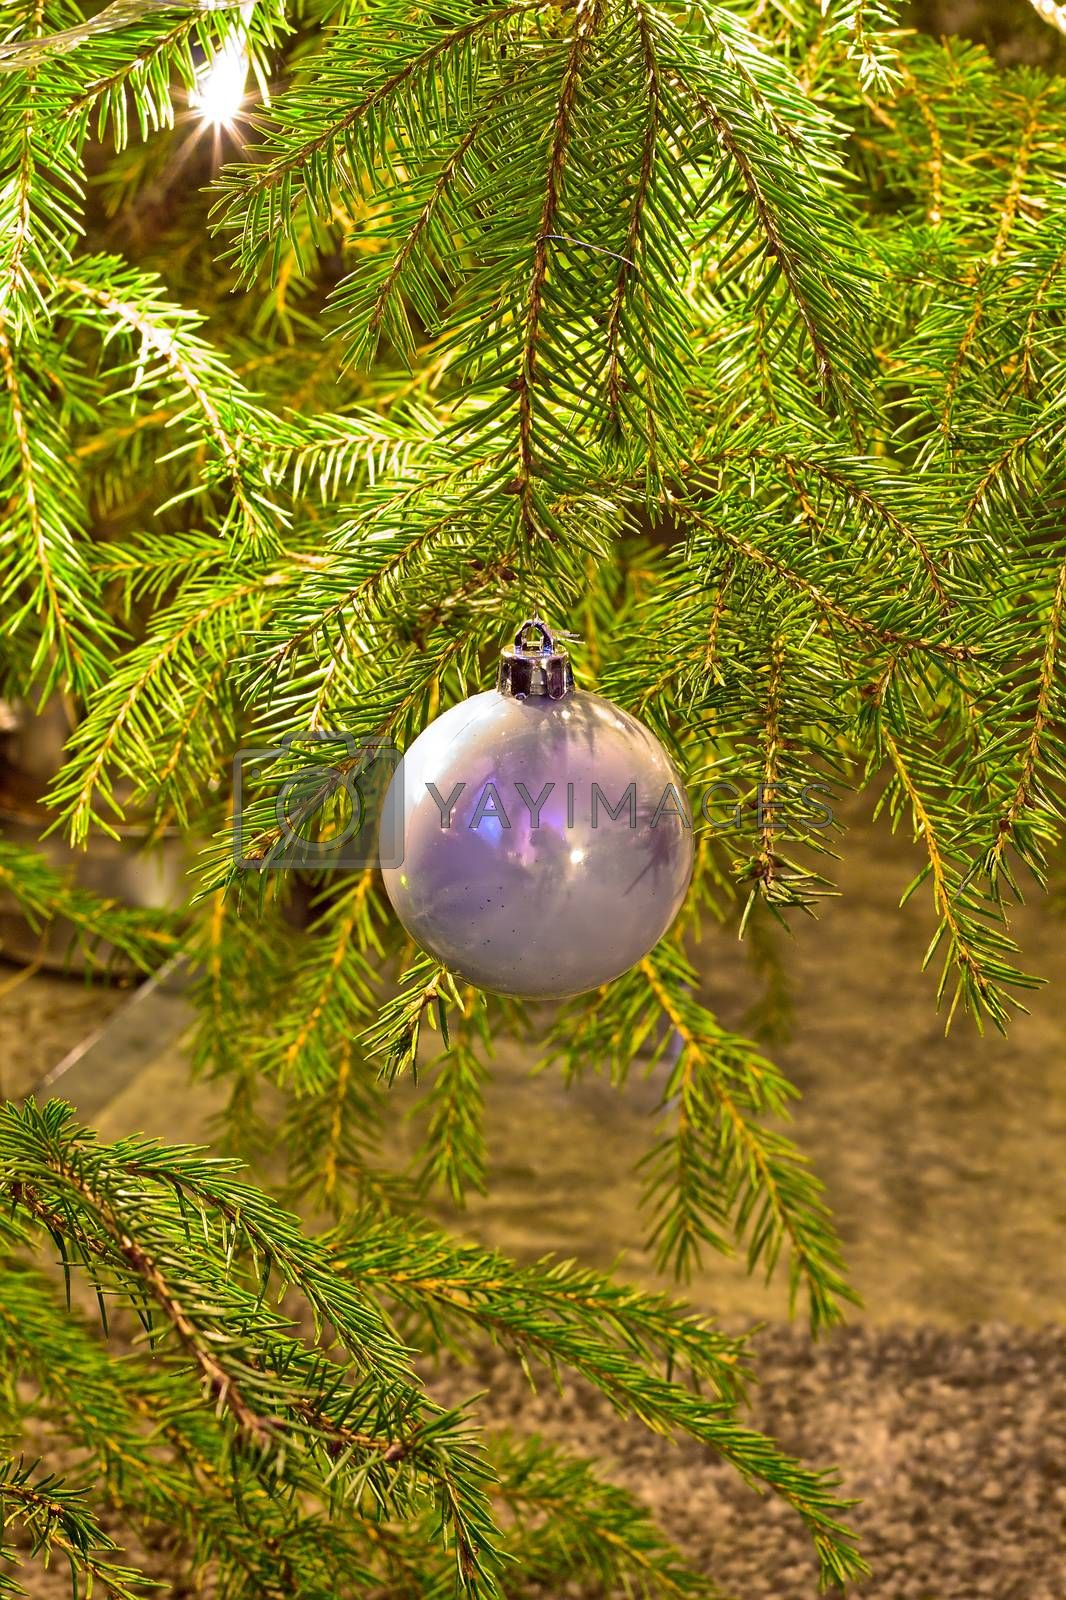 Only one round ornament hanging on the christmas tree.